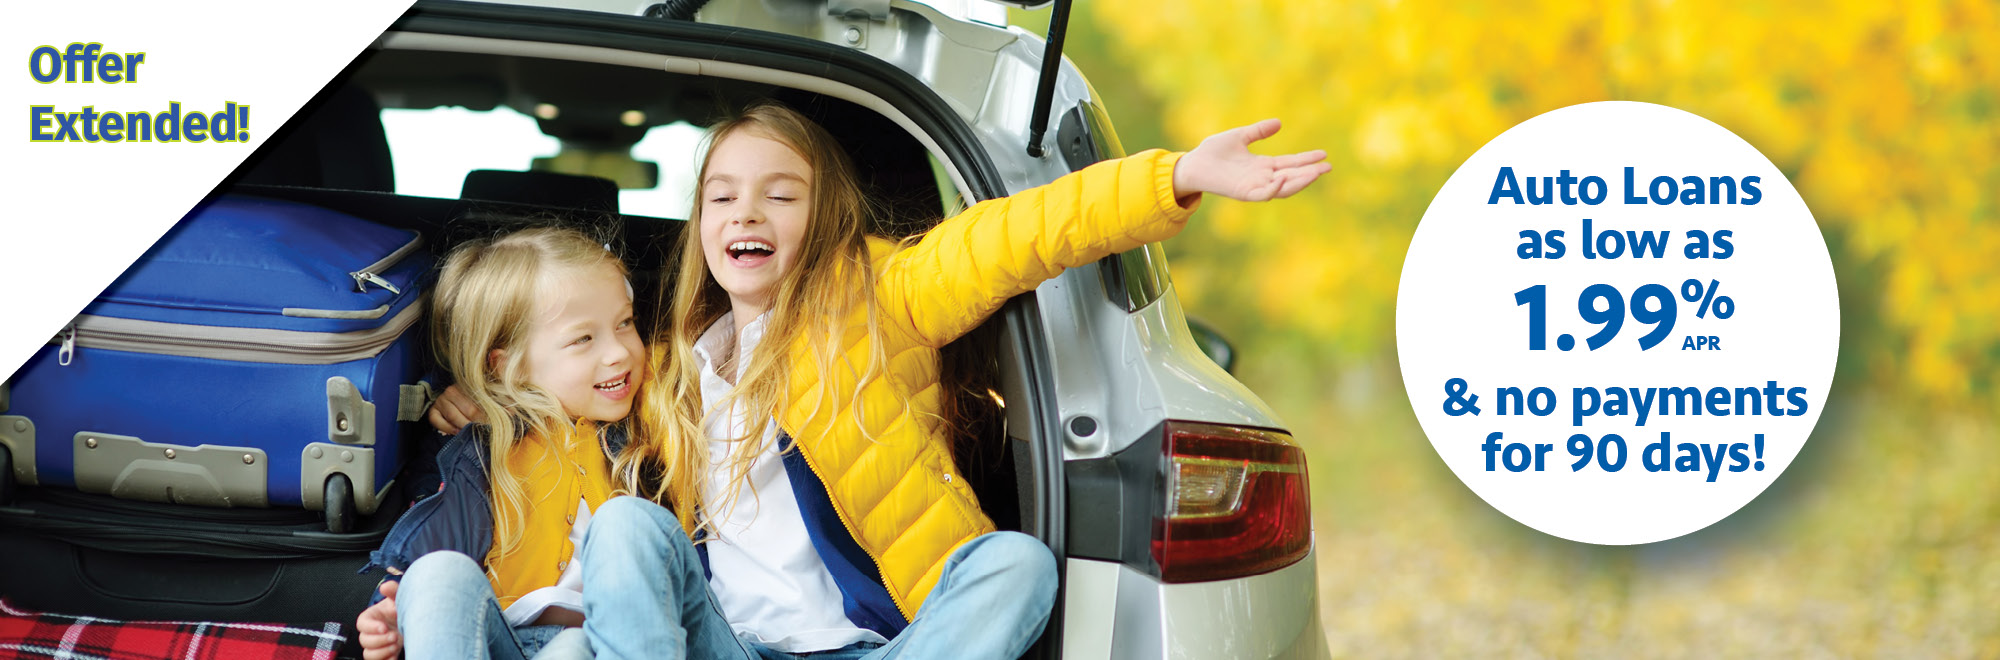 Offer Extended! Auto loans as low as 1.99% APR & no payments for 90 days!